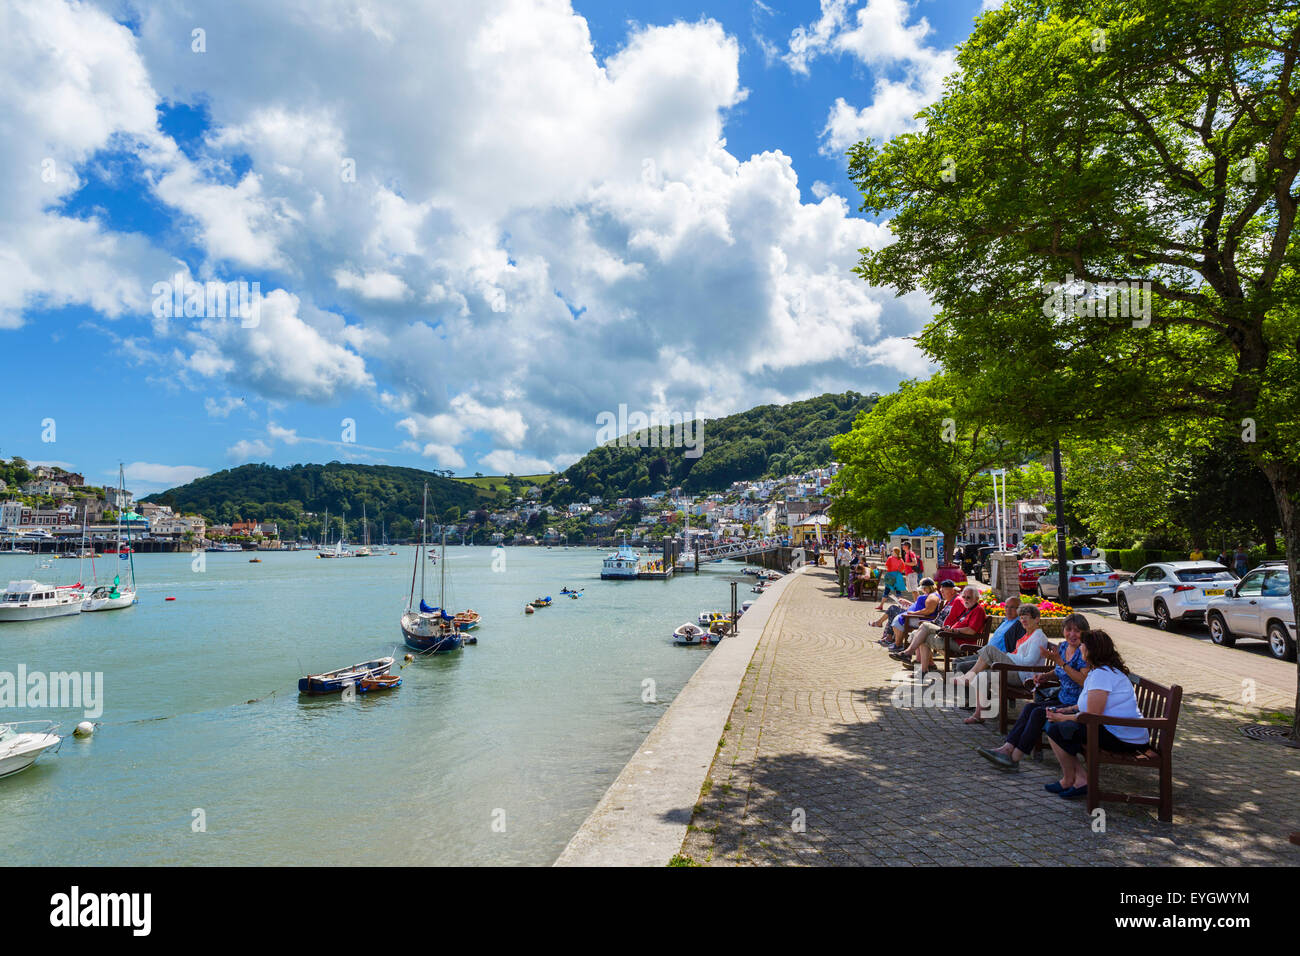 View along the North Embankment by the Dart River, Dartmouth, South Hams, Devon, England, UK - Stock Image